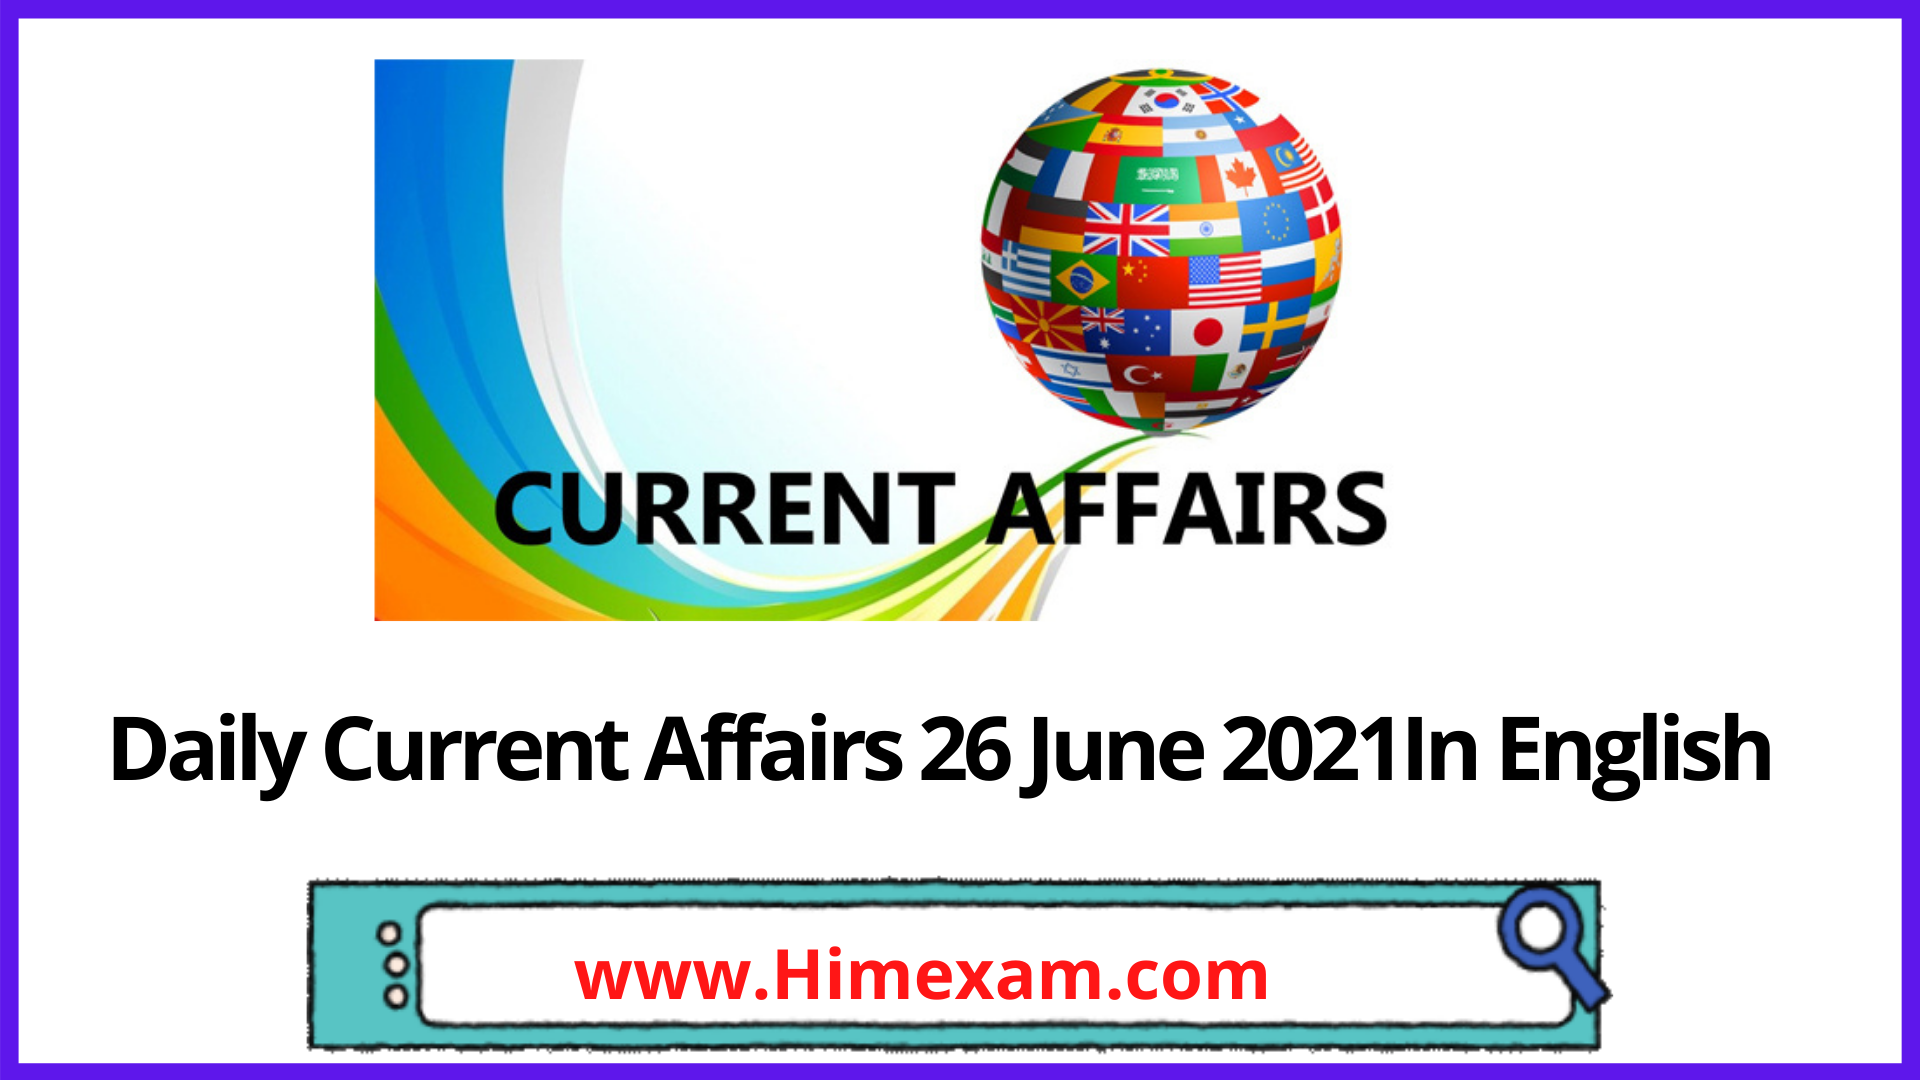 Daily Current Affairs 26 June 2021In English